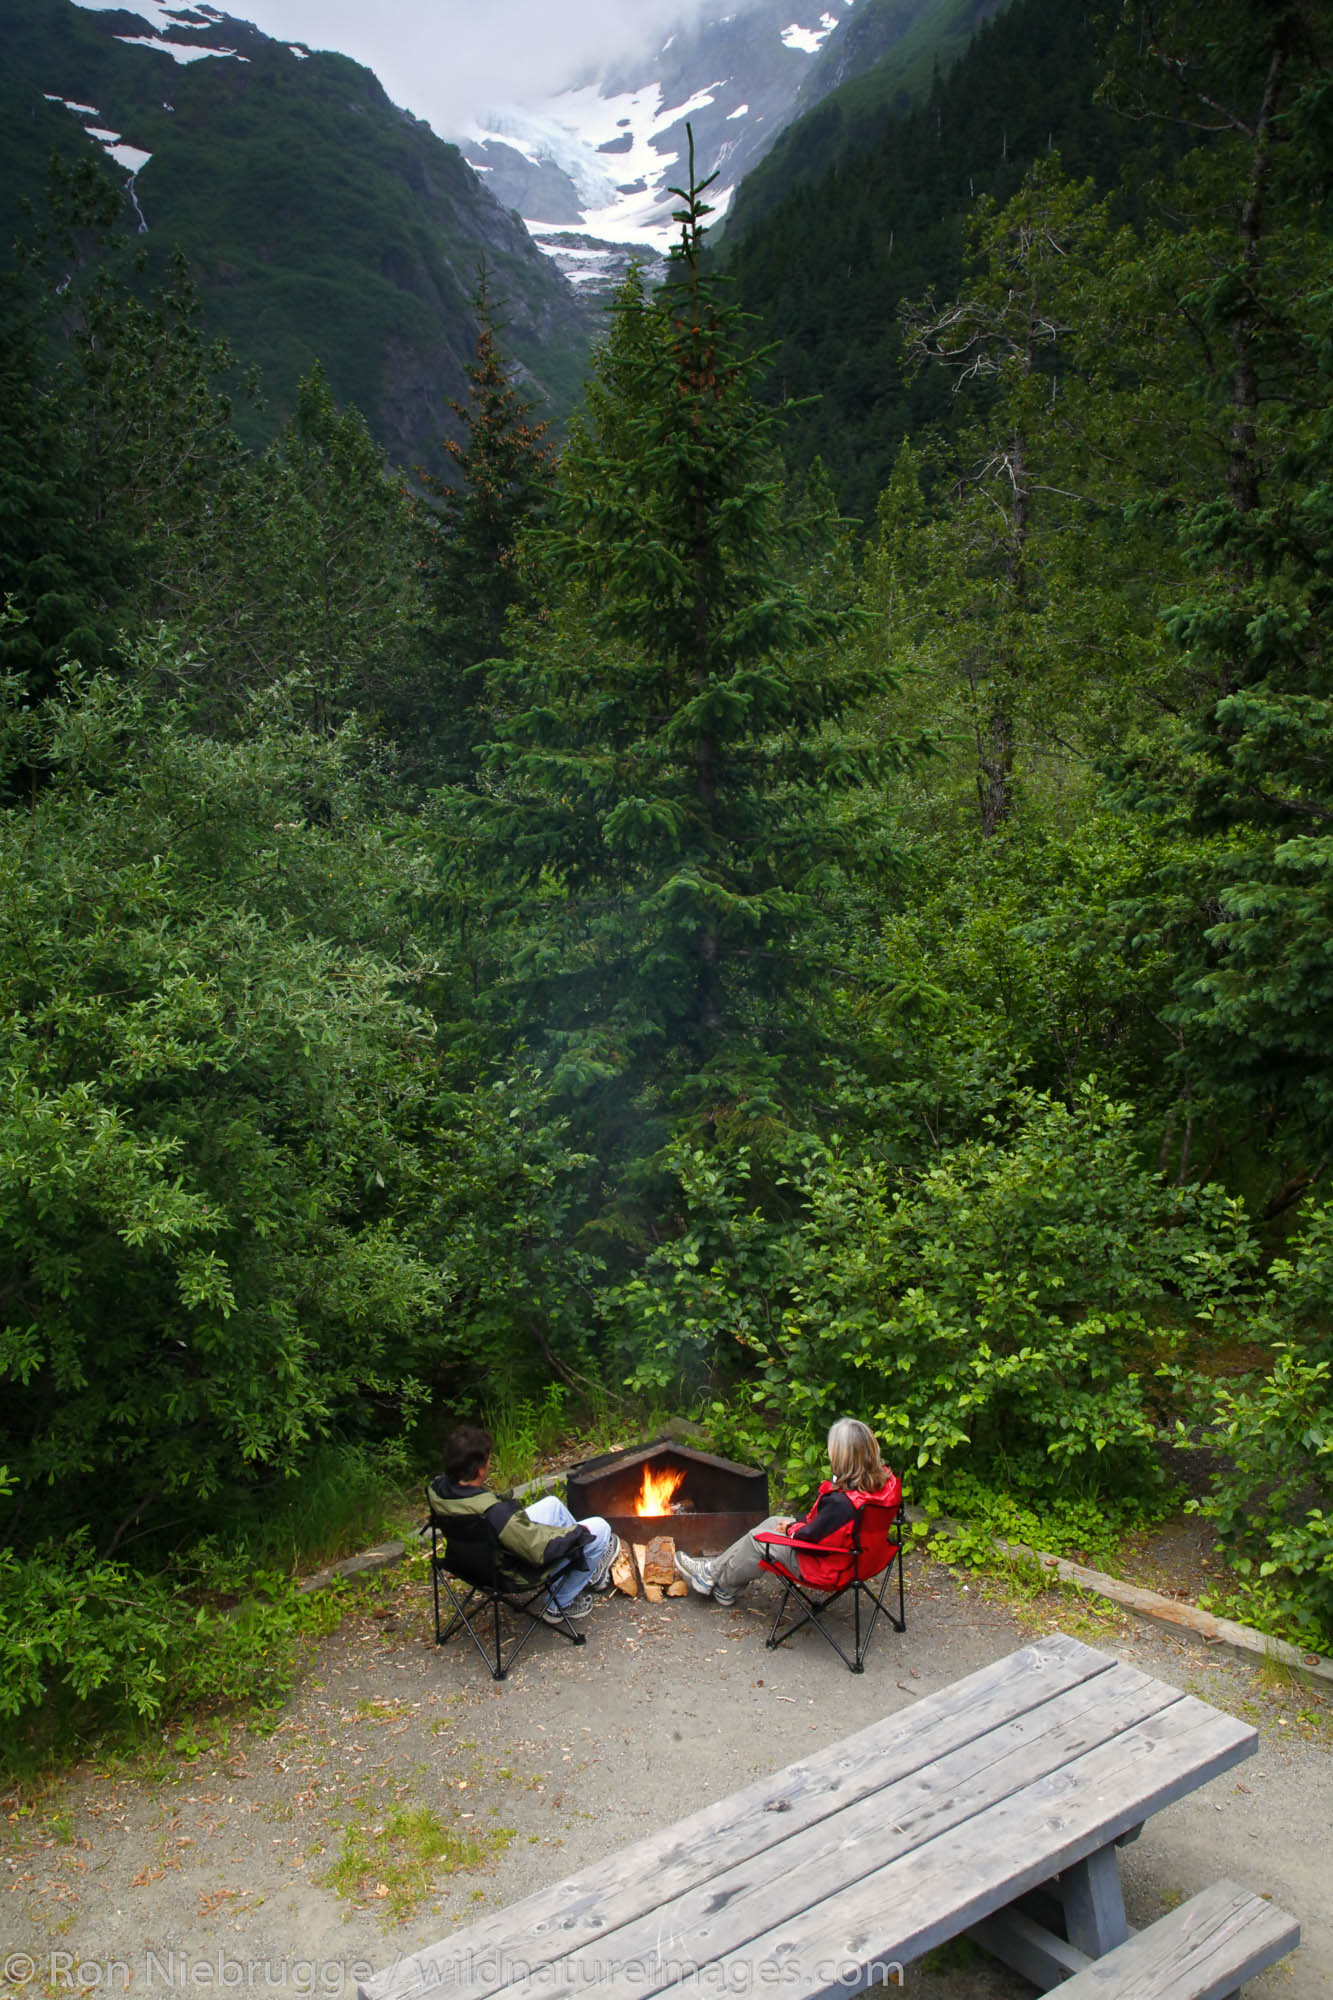 Camping at Williwaw Campground, Portage Valley, Chugach National Forest, Alaska. (MR)